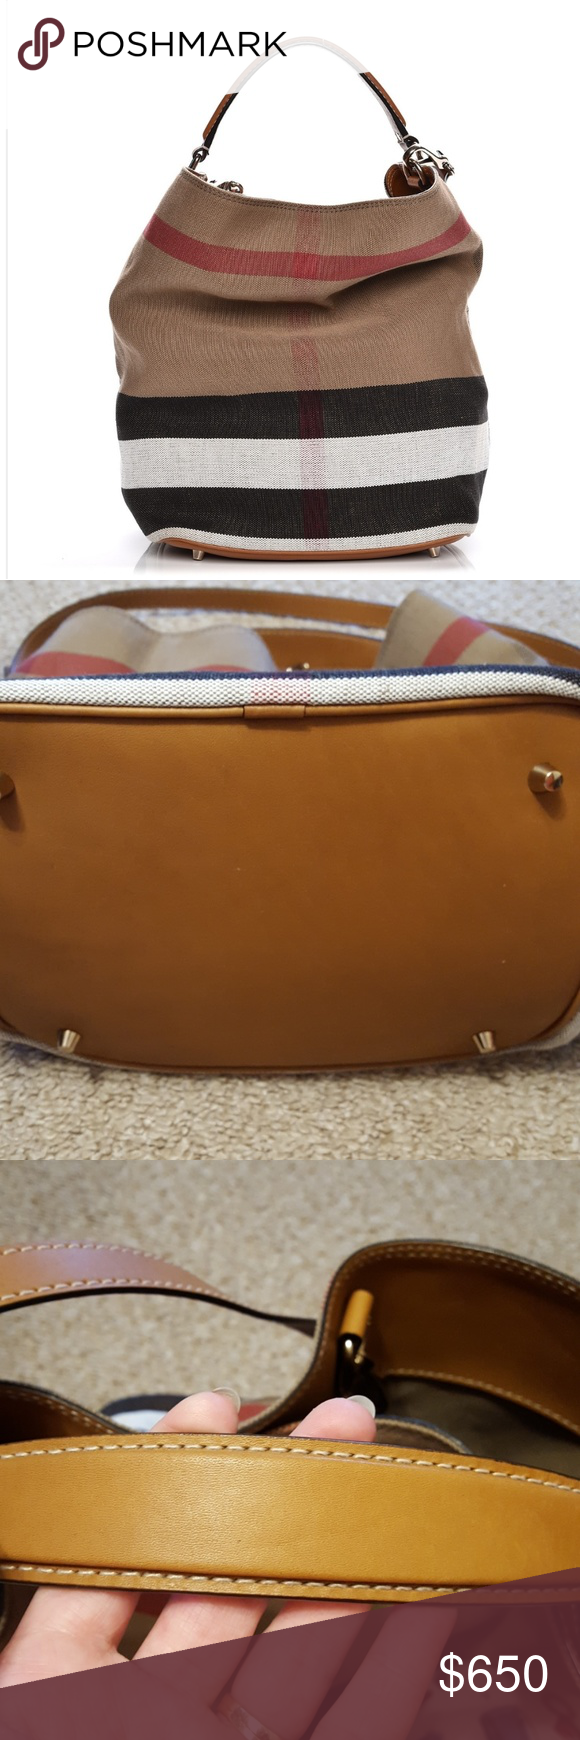 b4165f7983a Authentic Ashby in Canvas check Burberry hobo Authentic comes with Auth  Cert. The Ashby in Canvas check and leather with detachable purse pocket.